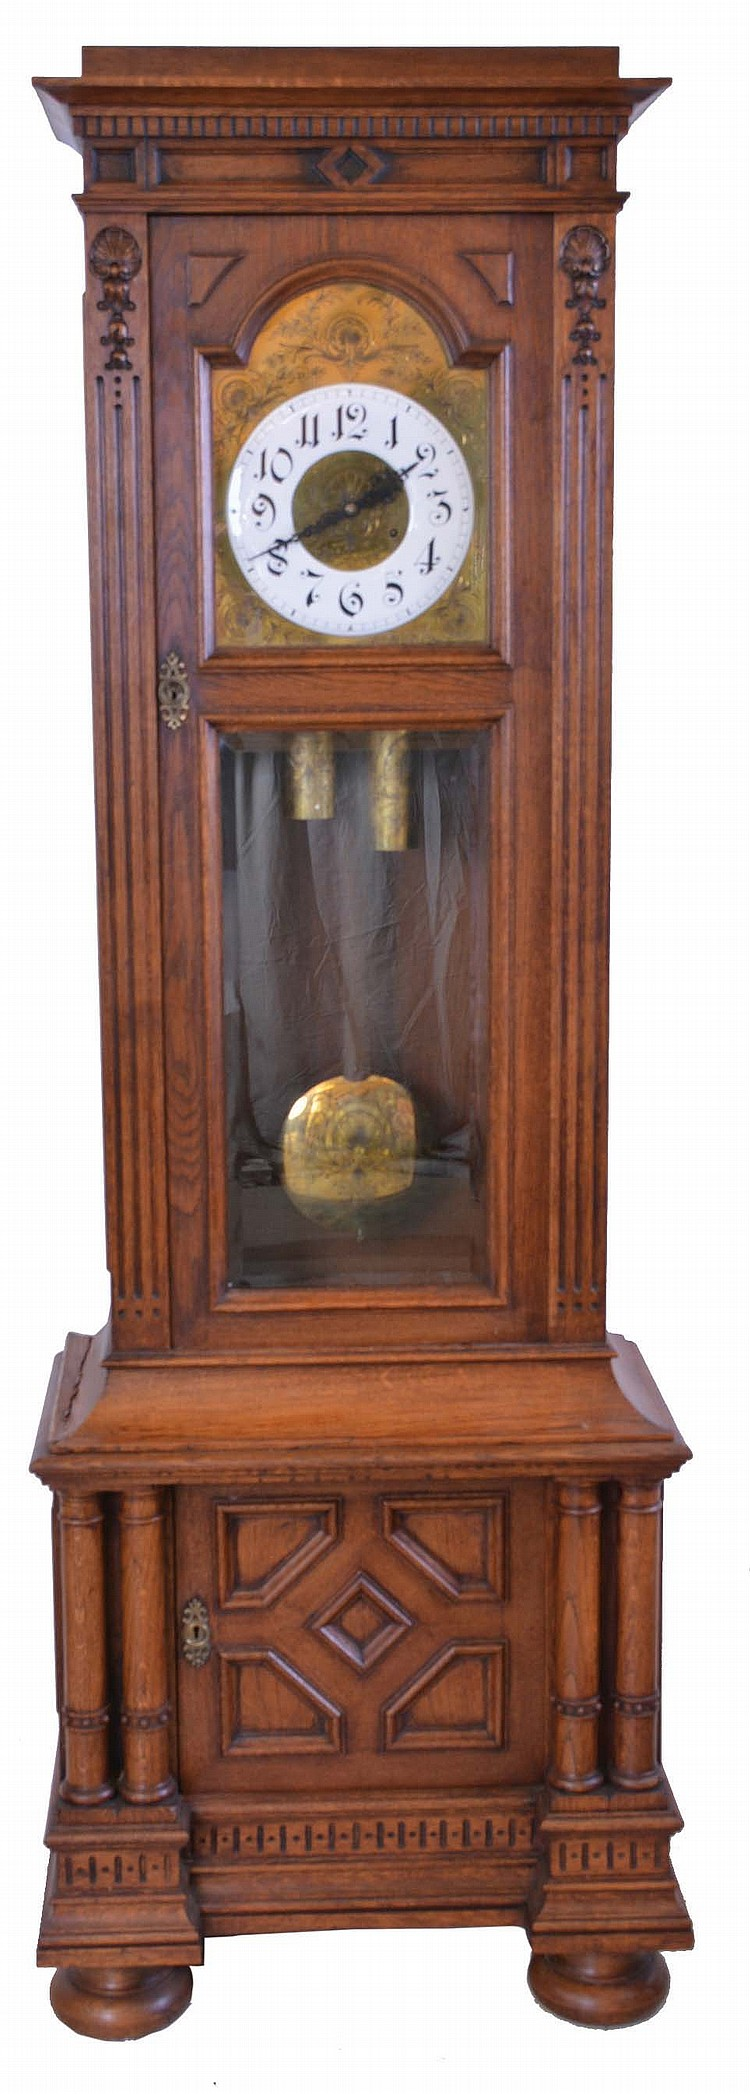 Germany, tall clock, 8 day, time and strike, two brass weight driven movement in a carved oak case, beveled glass door, cabinet in base on bun feet with engraved brass dial with white enamel chapter ring and matching engraved weights, pendulum and